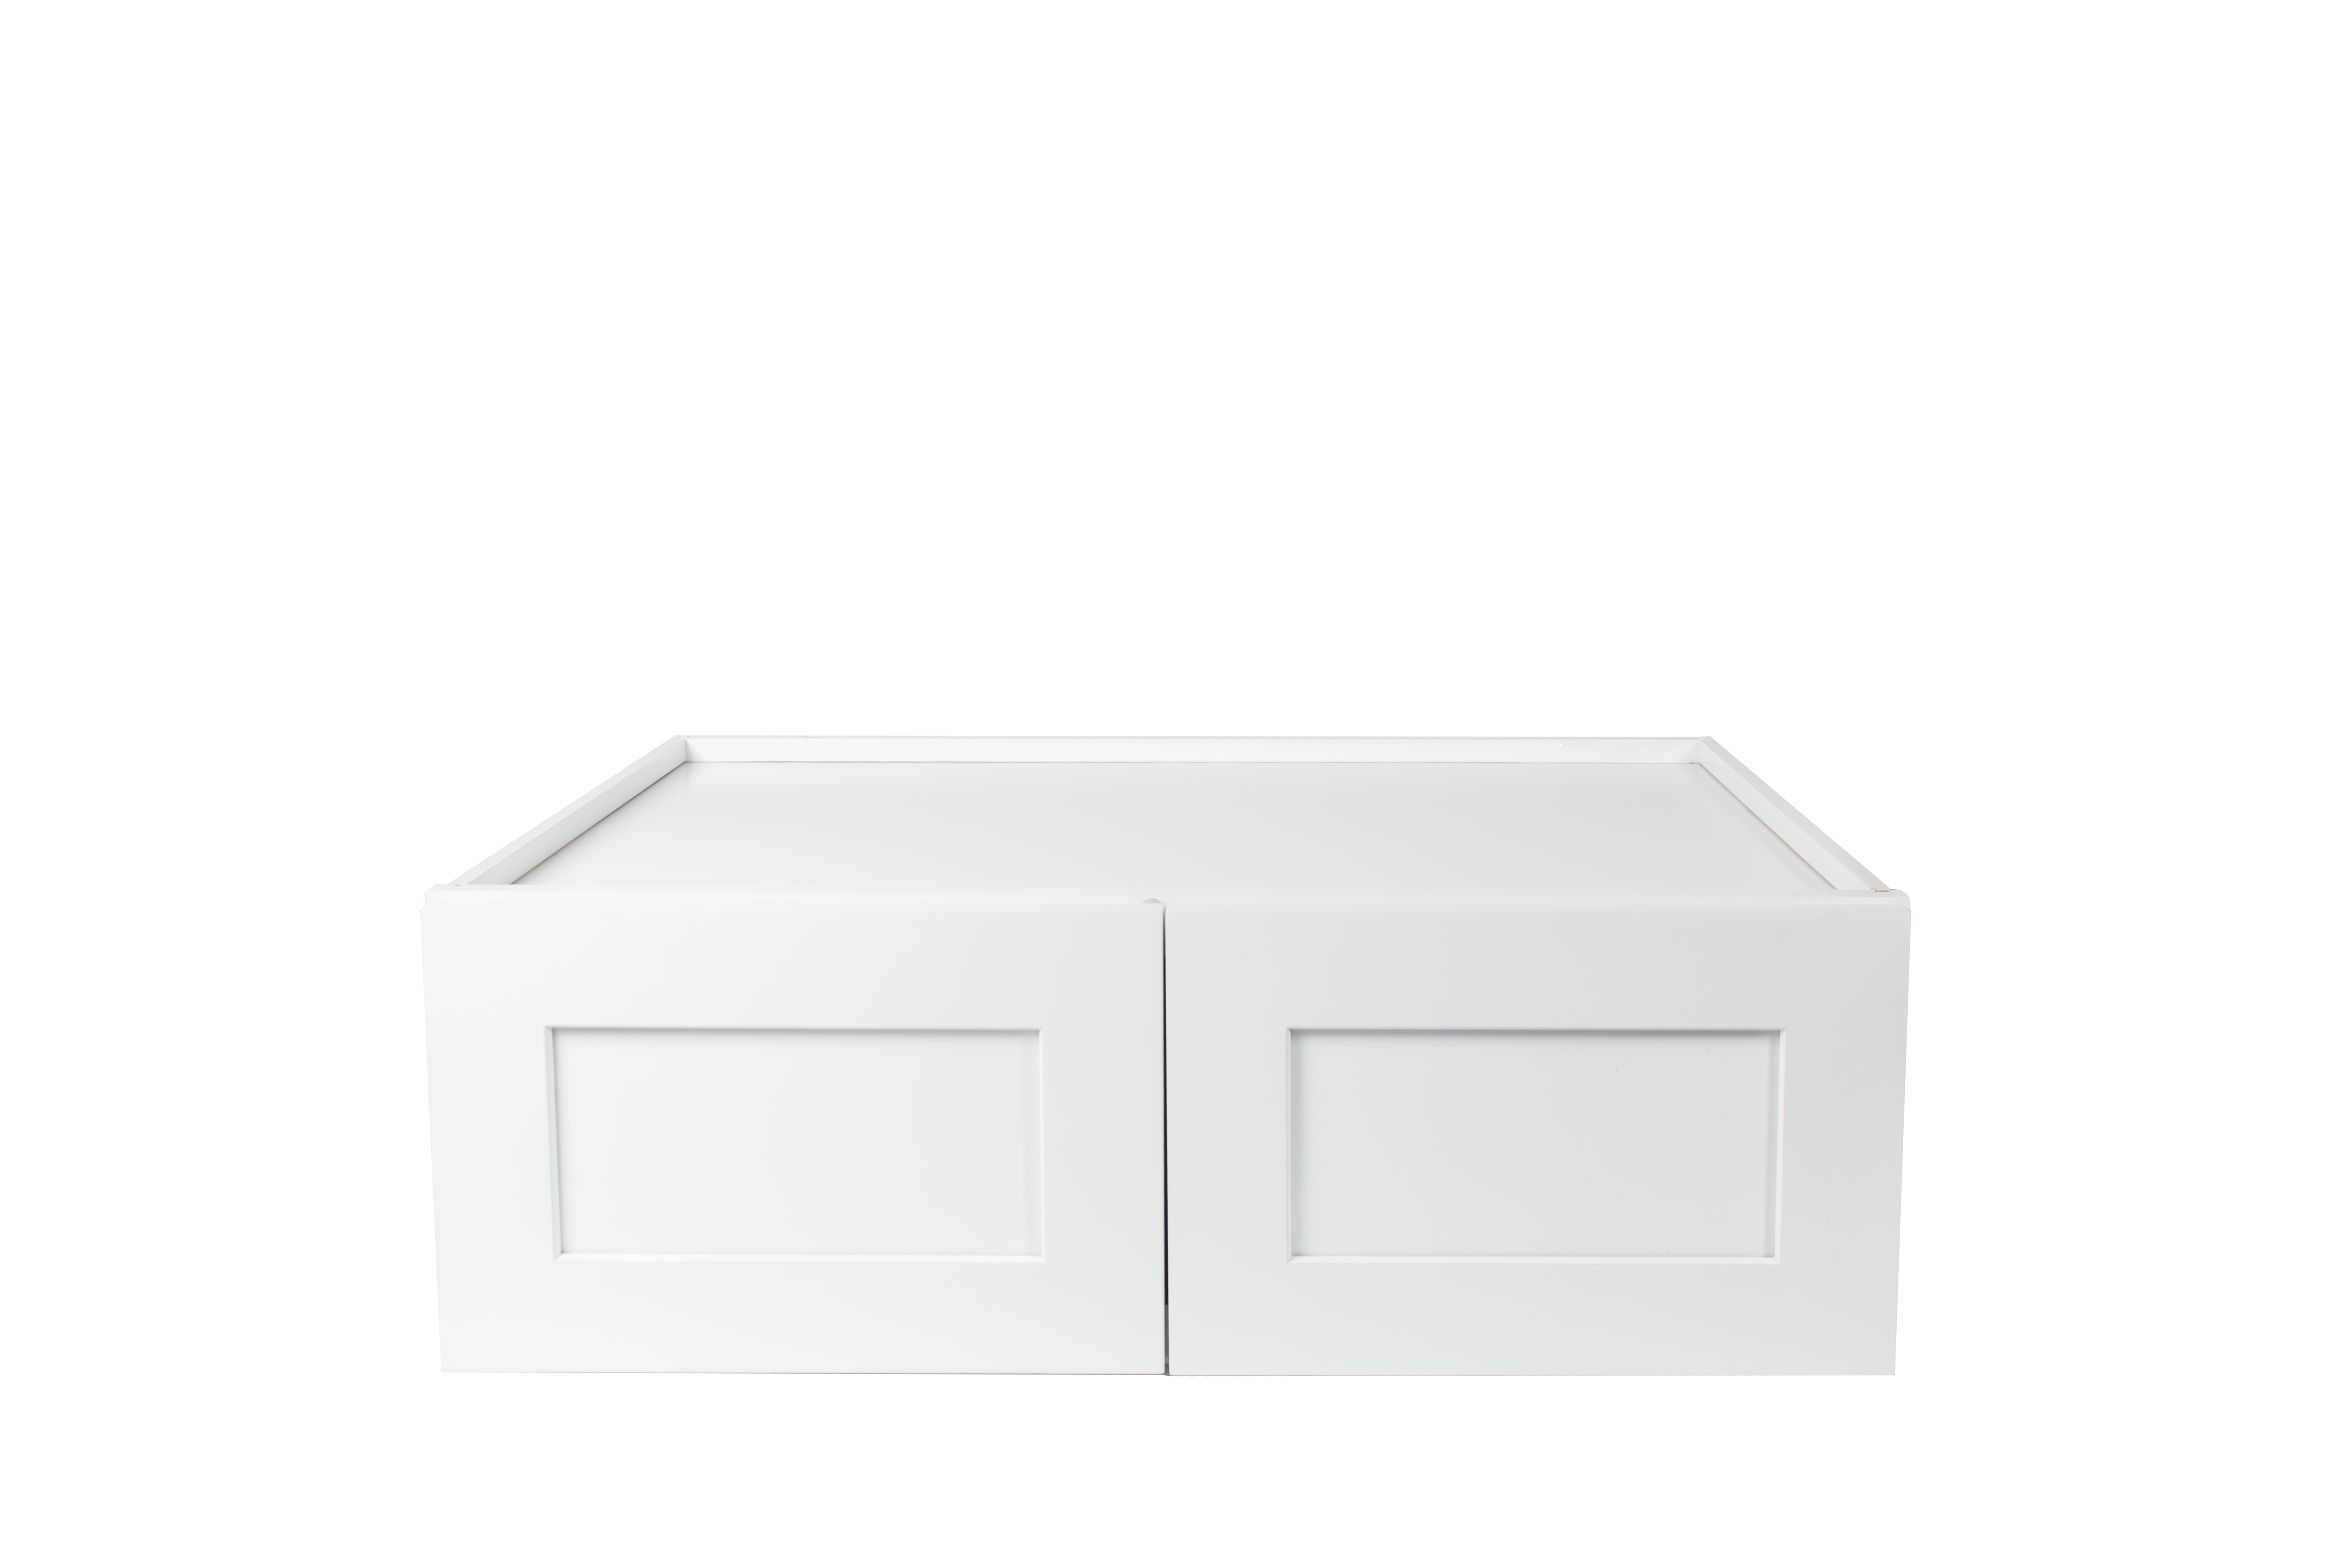 Ready to Assemble 36x12x12 in. Shaker High Double Door Wall Cabinet in White